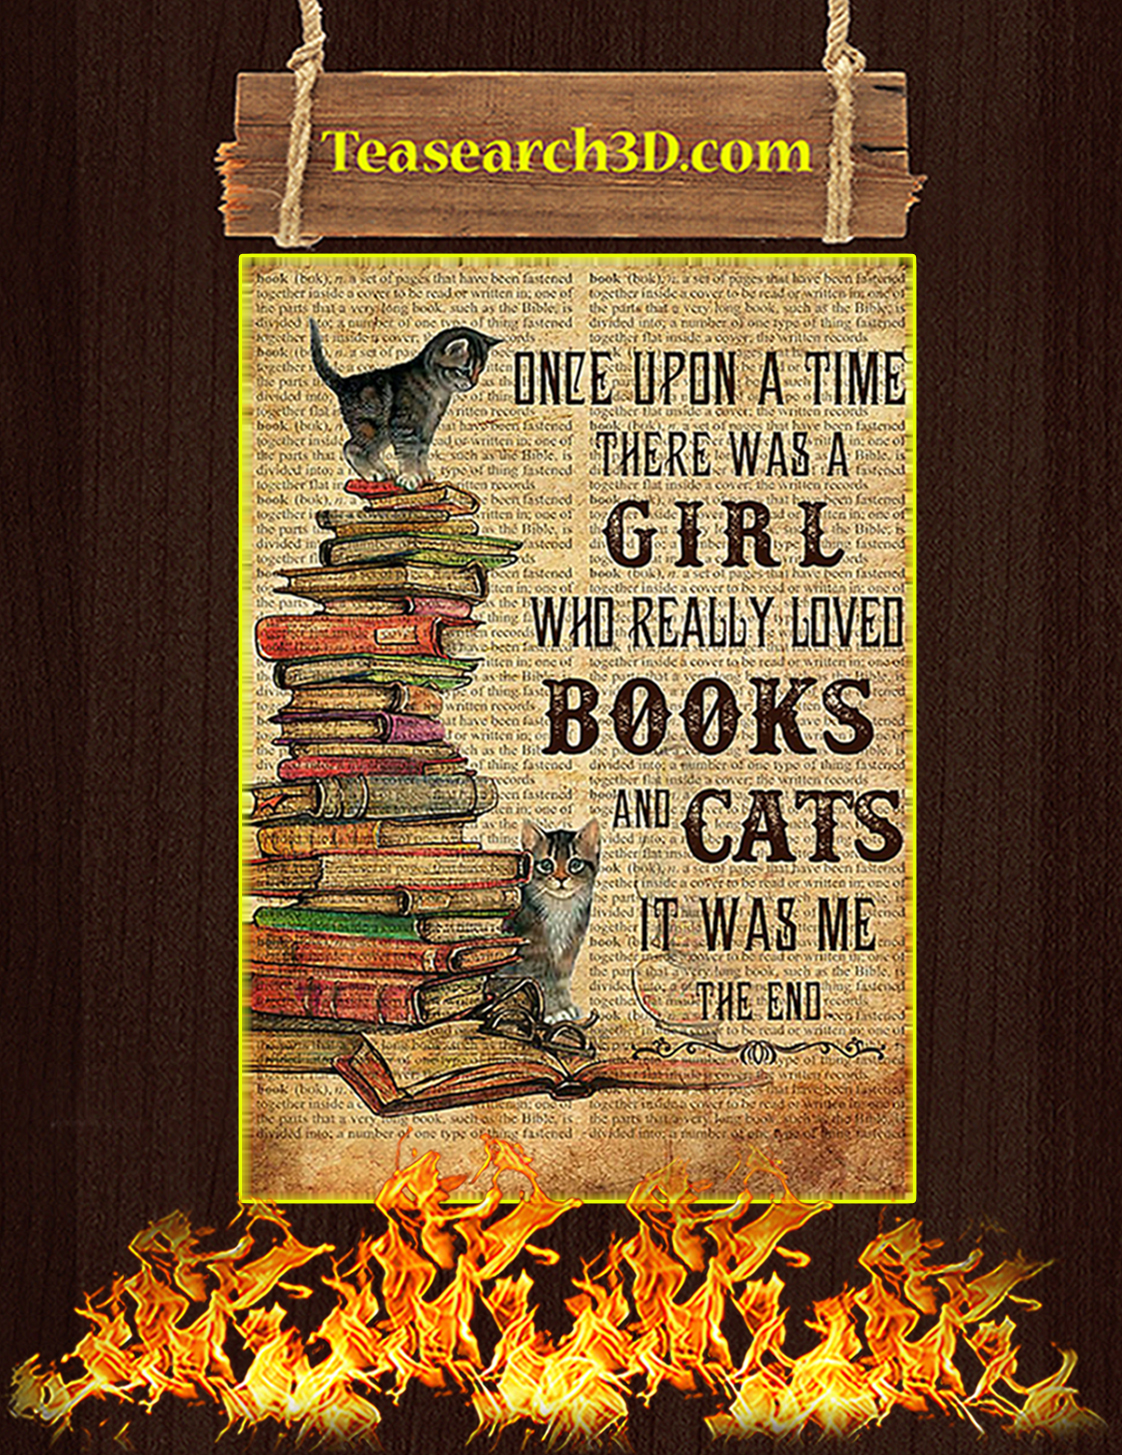 One upon a time there was a girl who really loved books and cats Poster A3